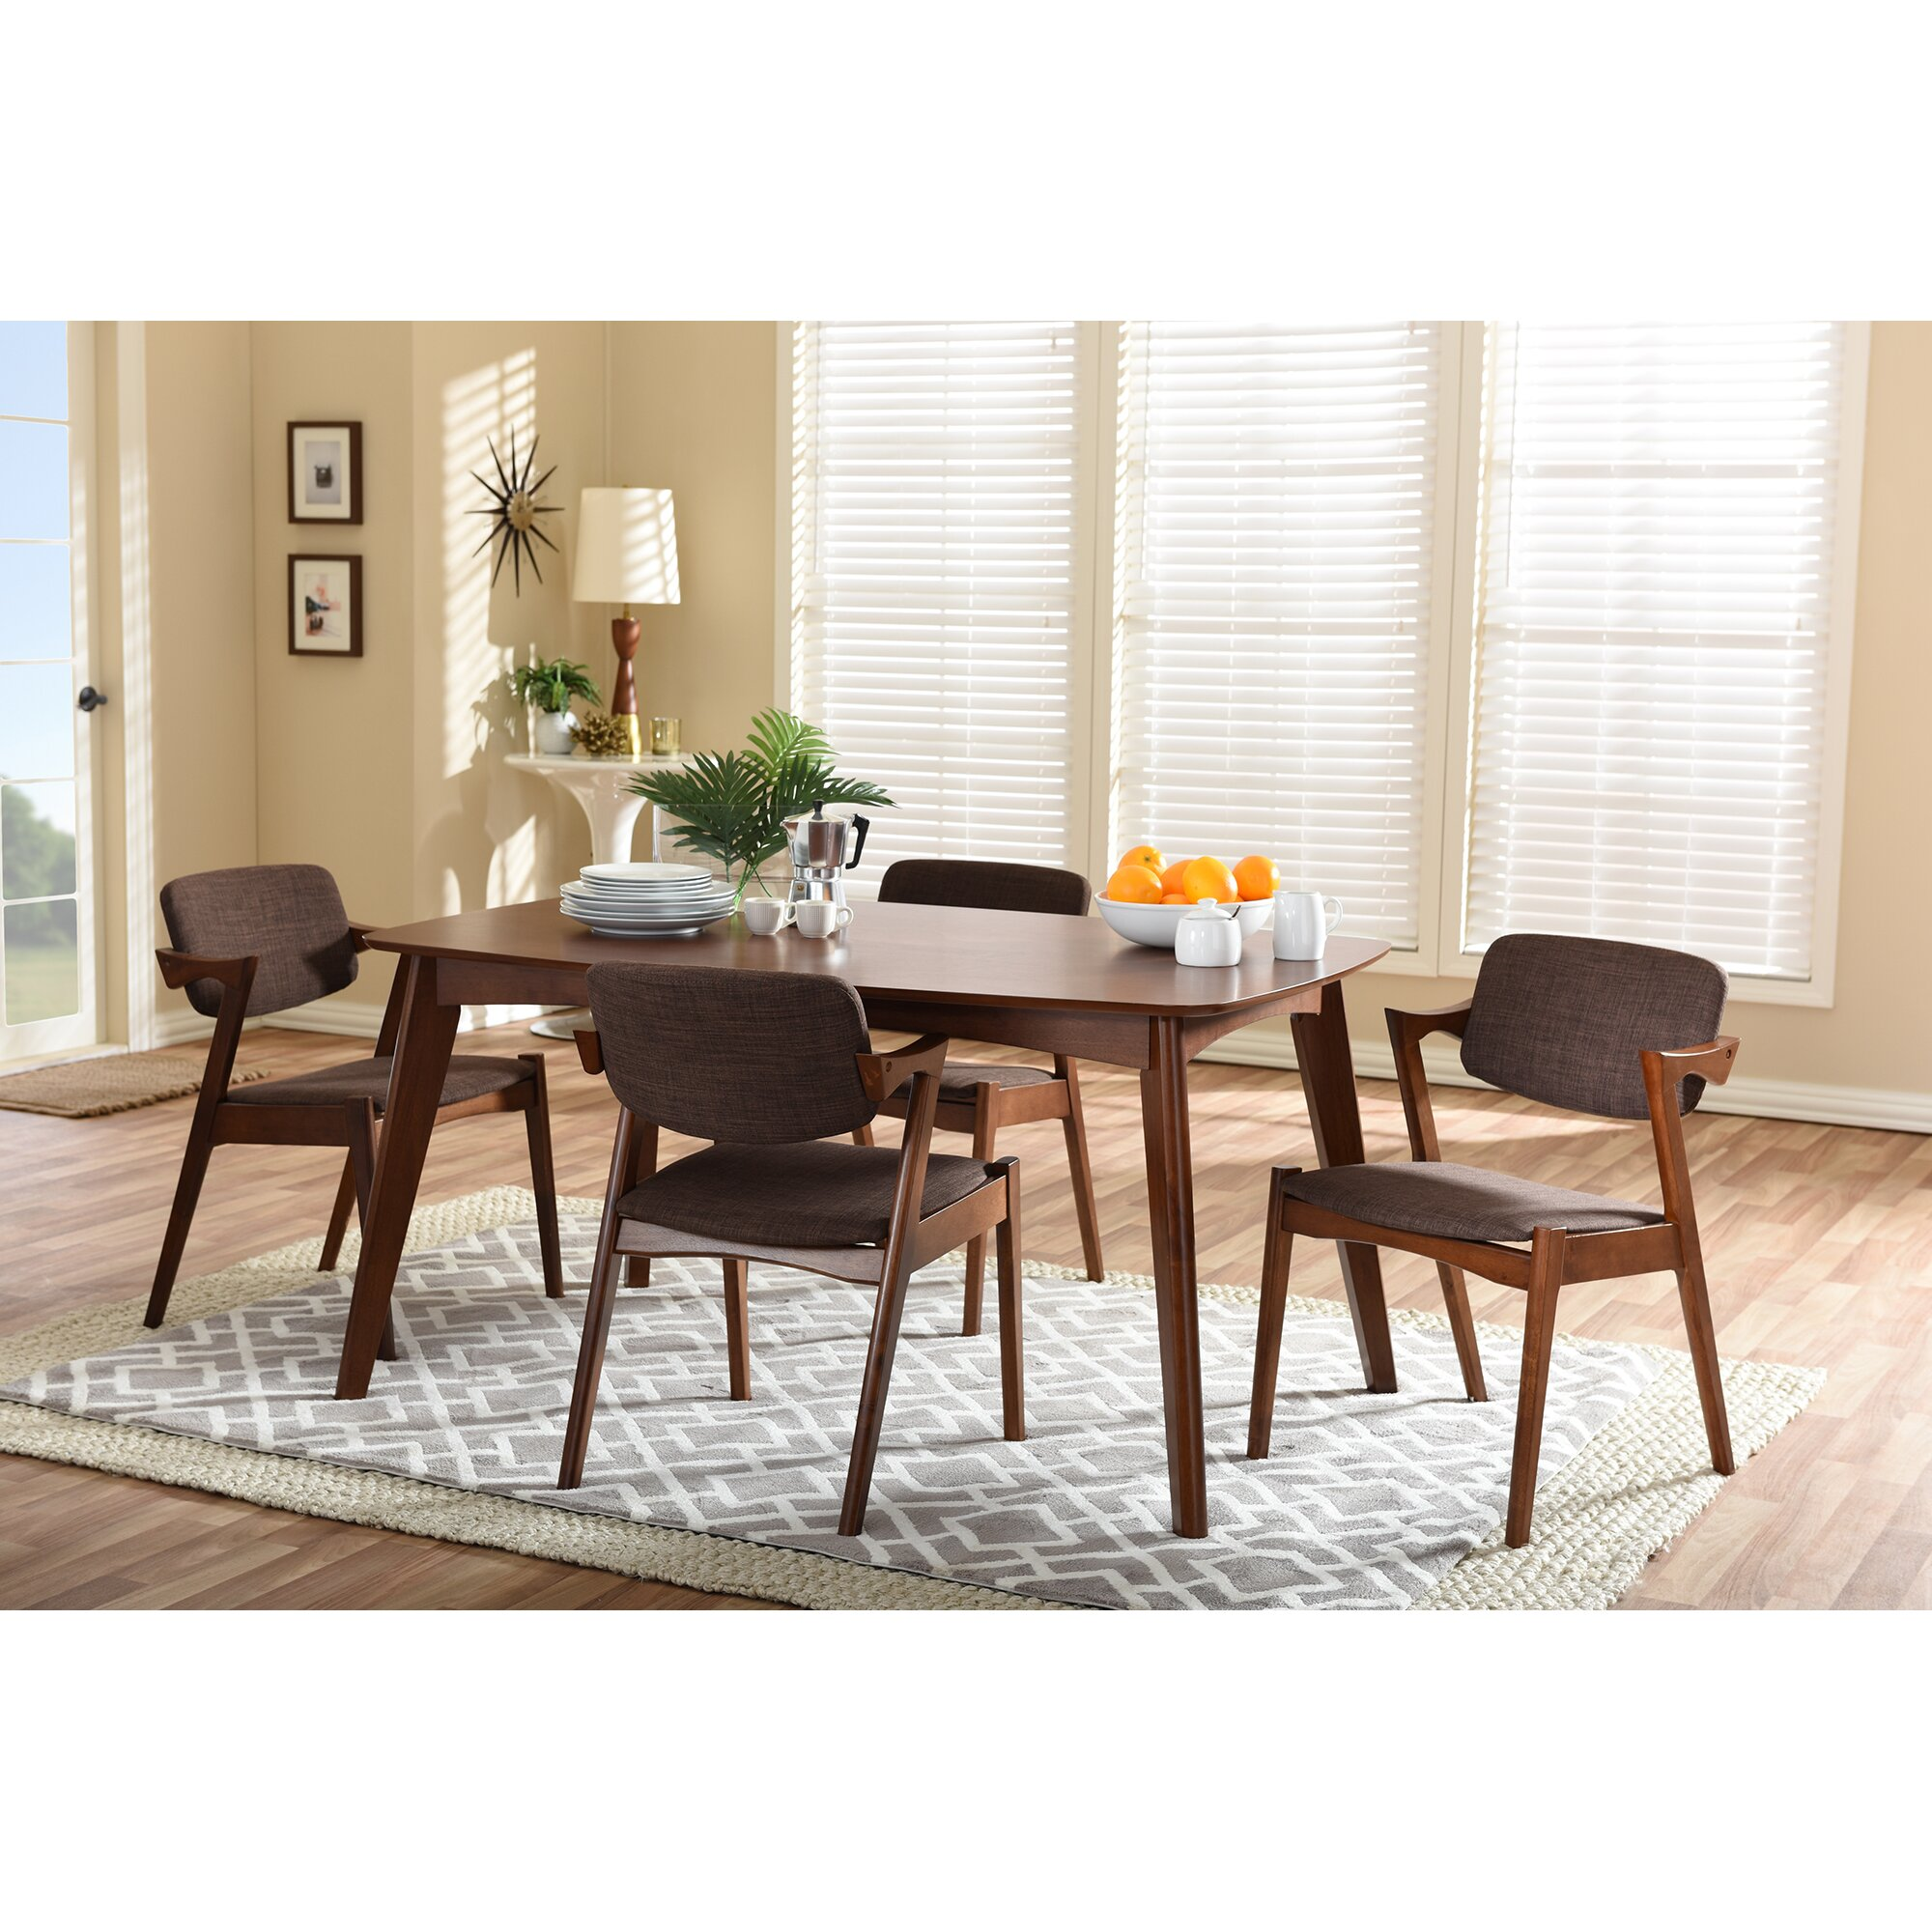 Dark Wood Dining Set: Wholesale Interiors Baxton Studio Elegant Dark Walnut